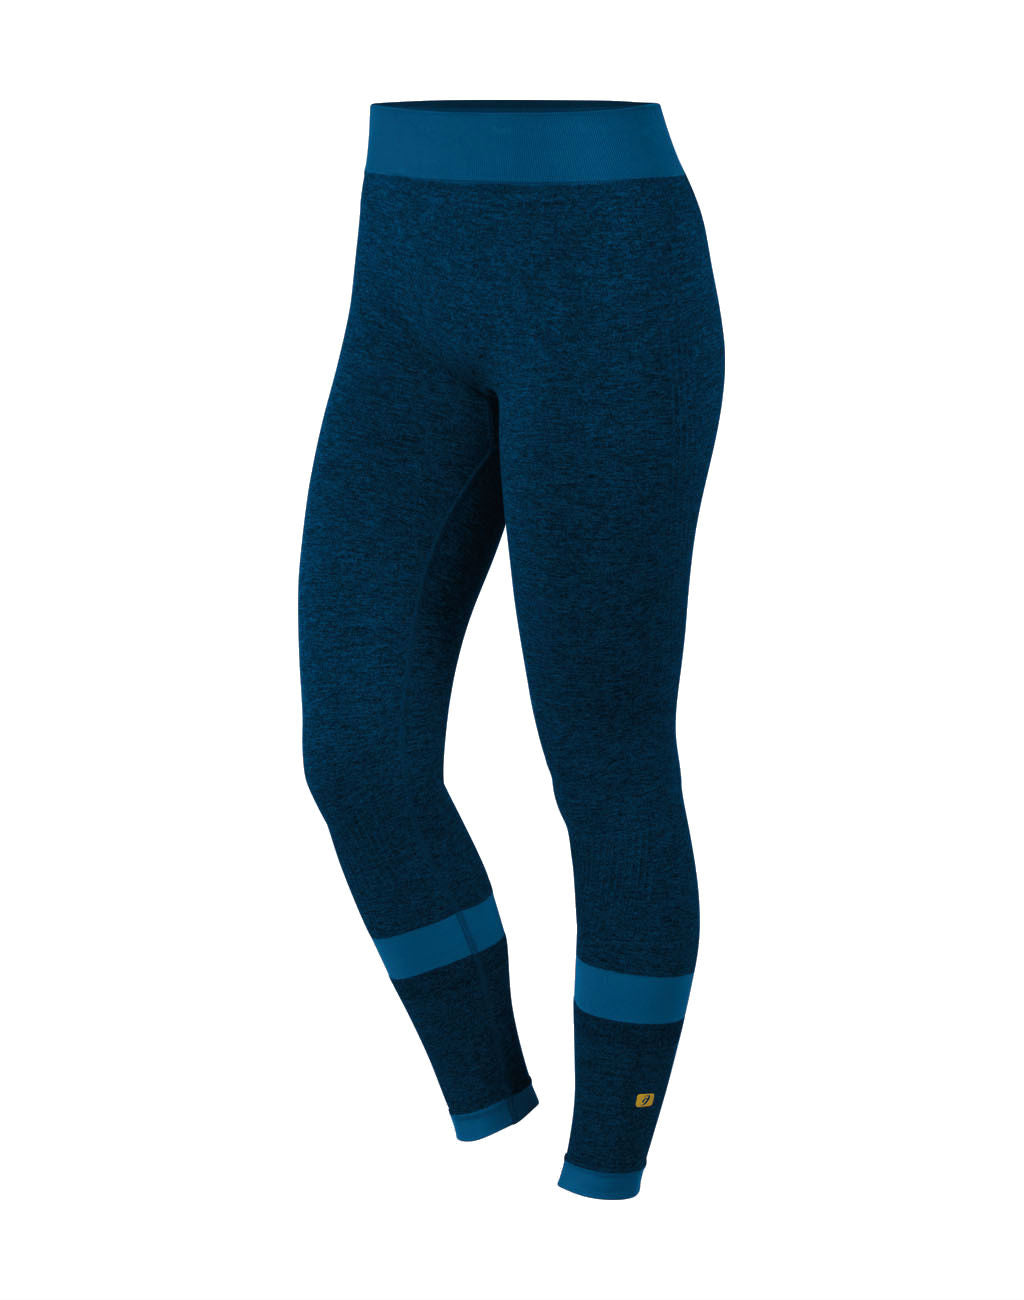 ASICS Fit-Sana Seamless Tight 25in (Women's)S_master_image